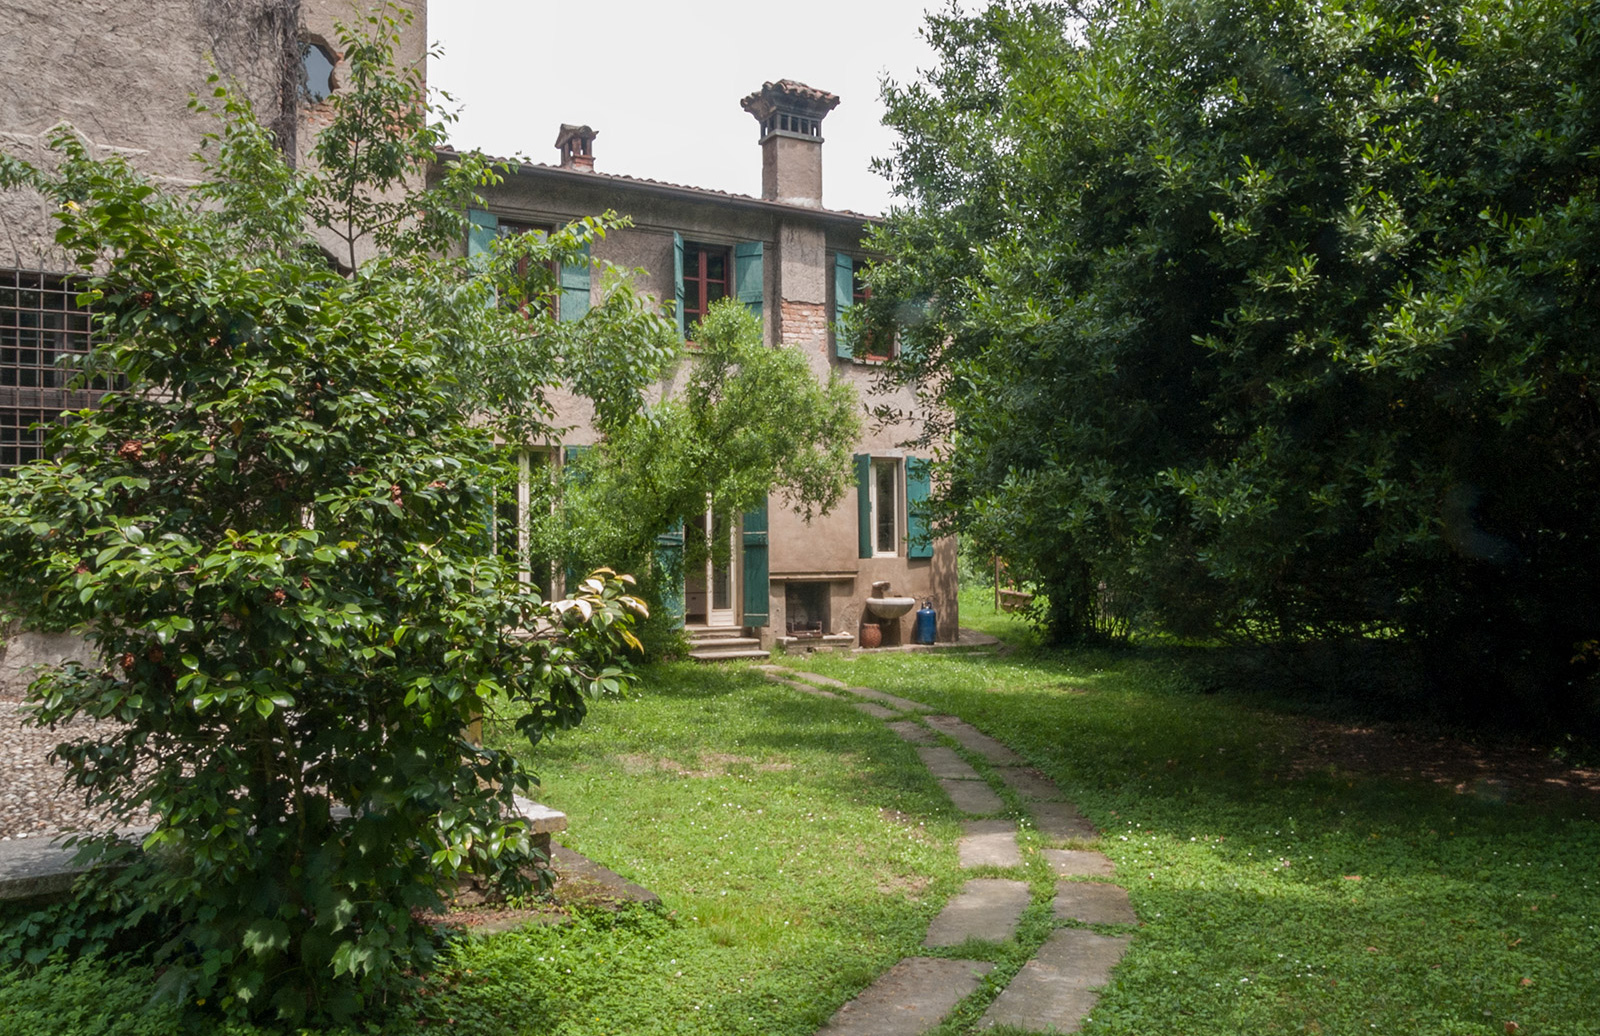 Call Me By Your Name S Dreamy Italian Villa Could Be Yours